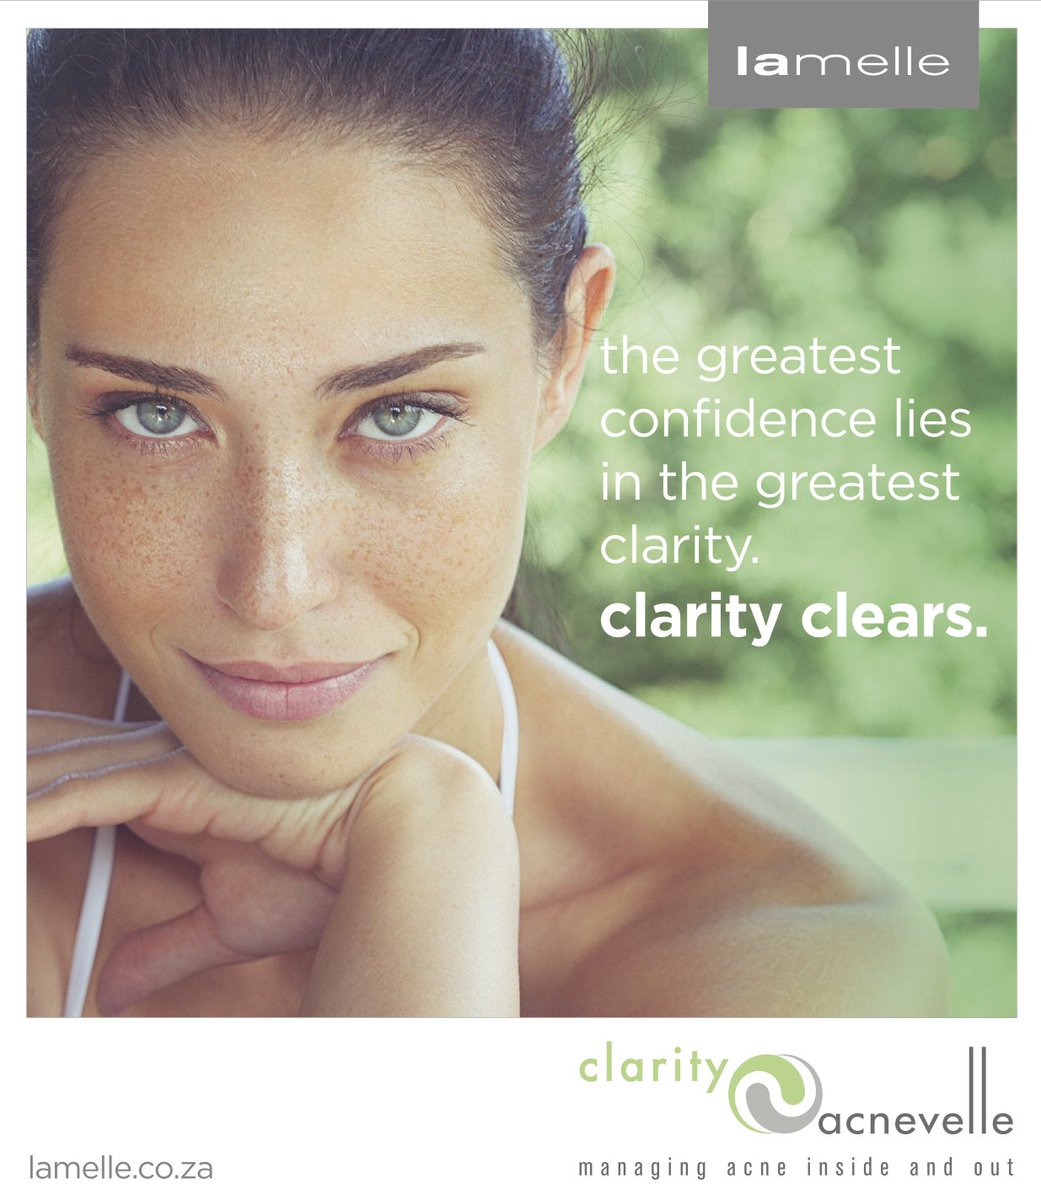 Get confident clear skin with Clarity. #ClarityClears